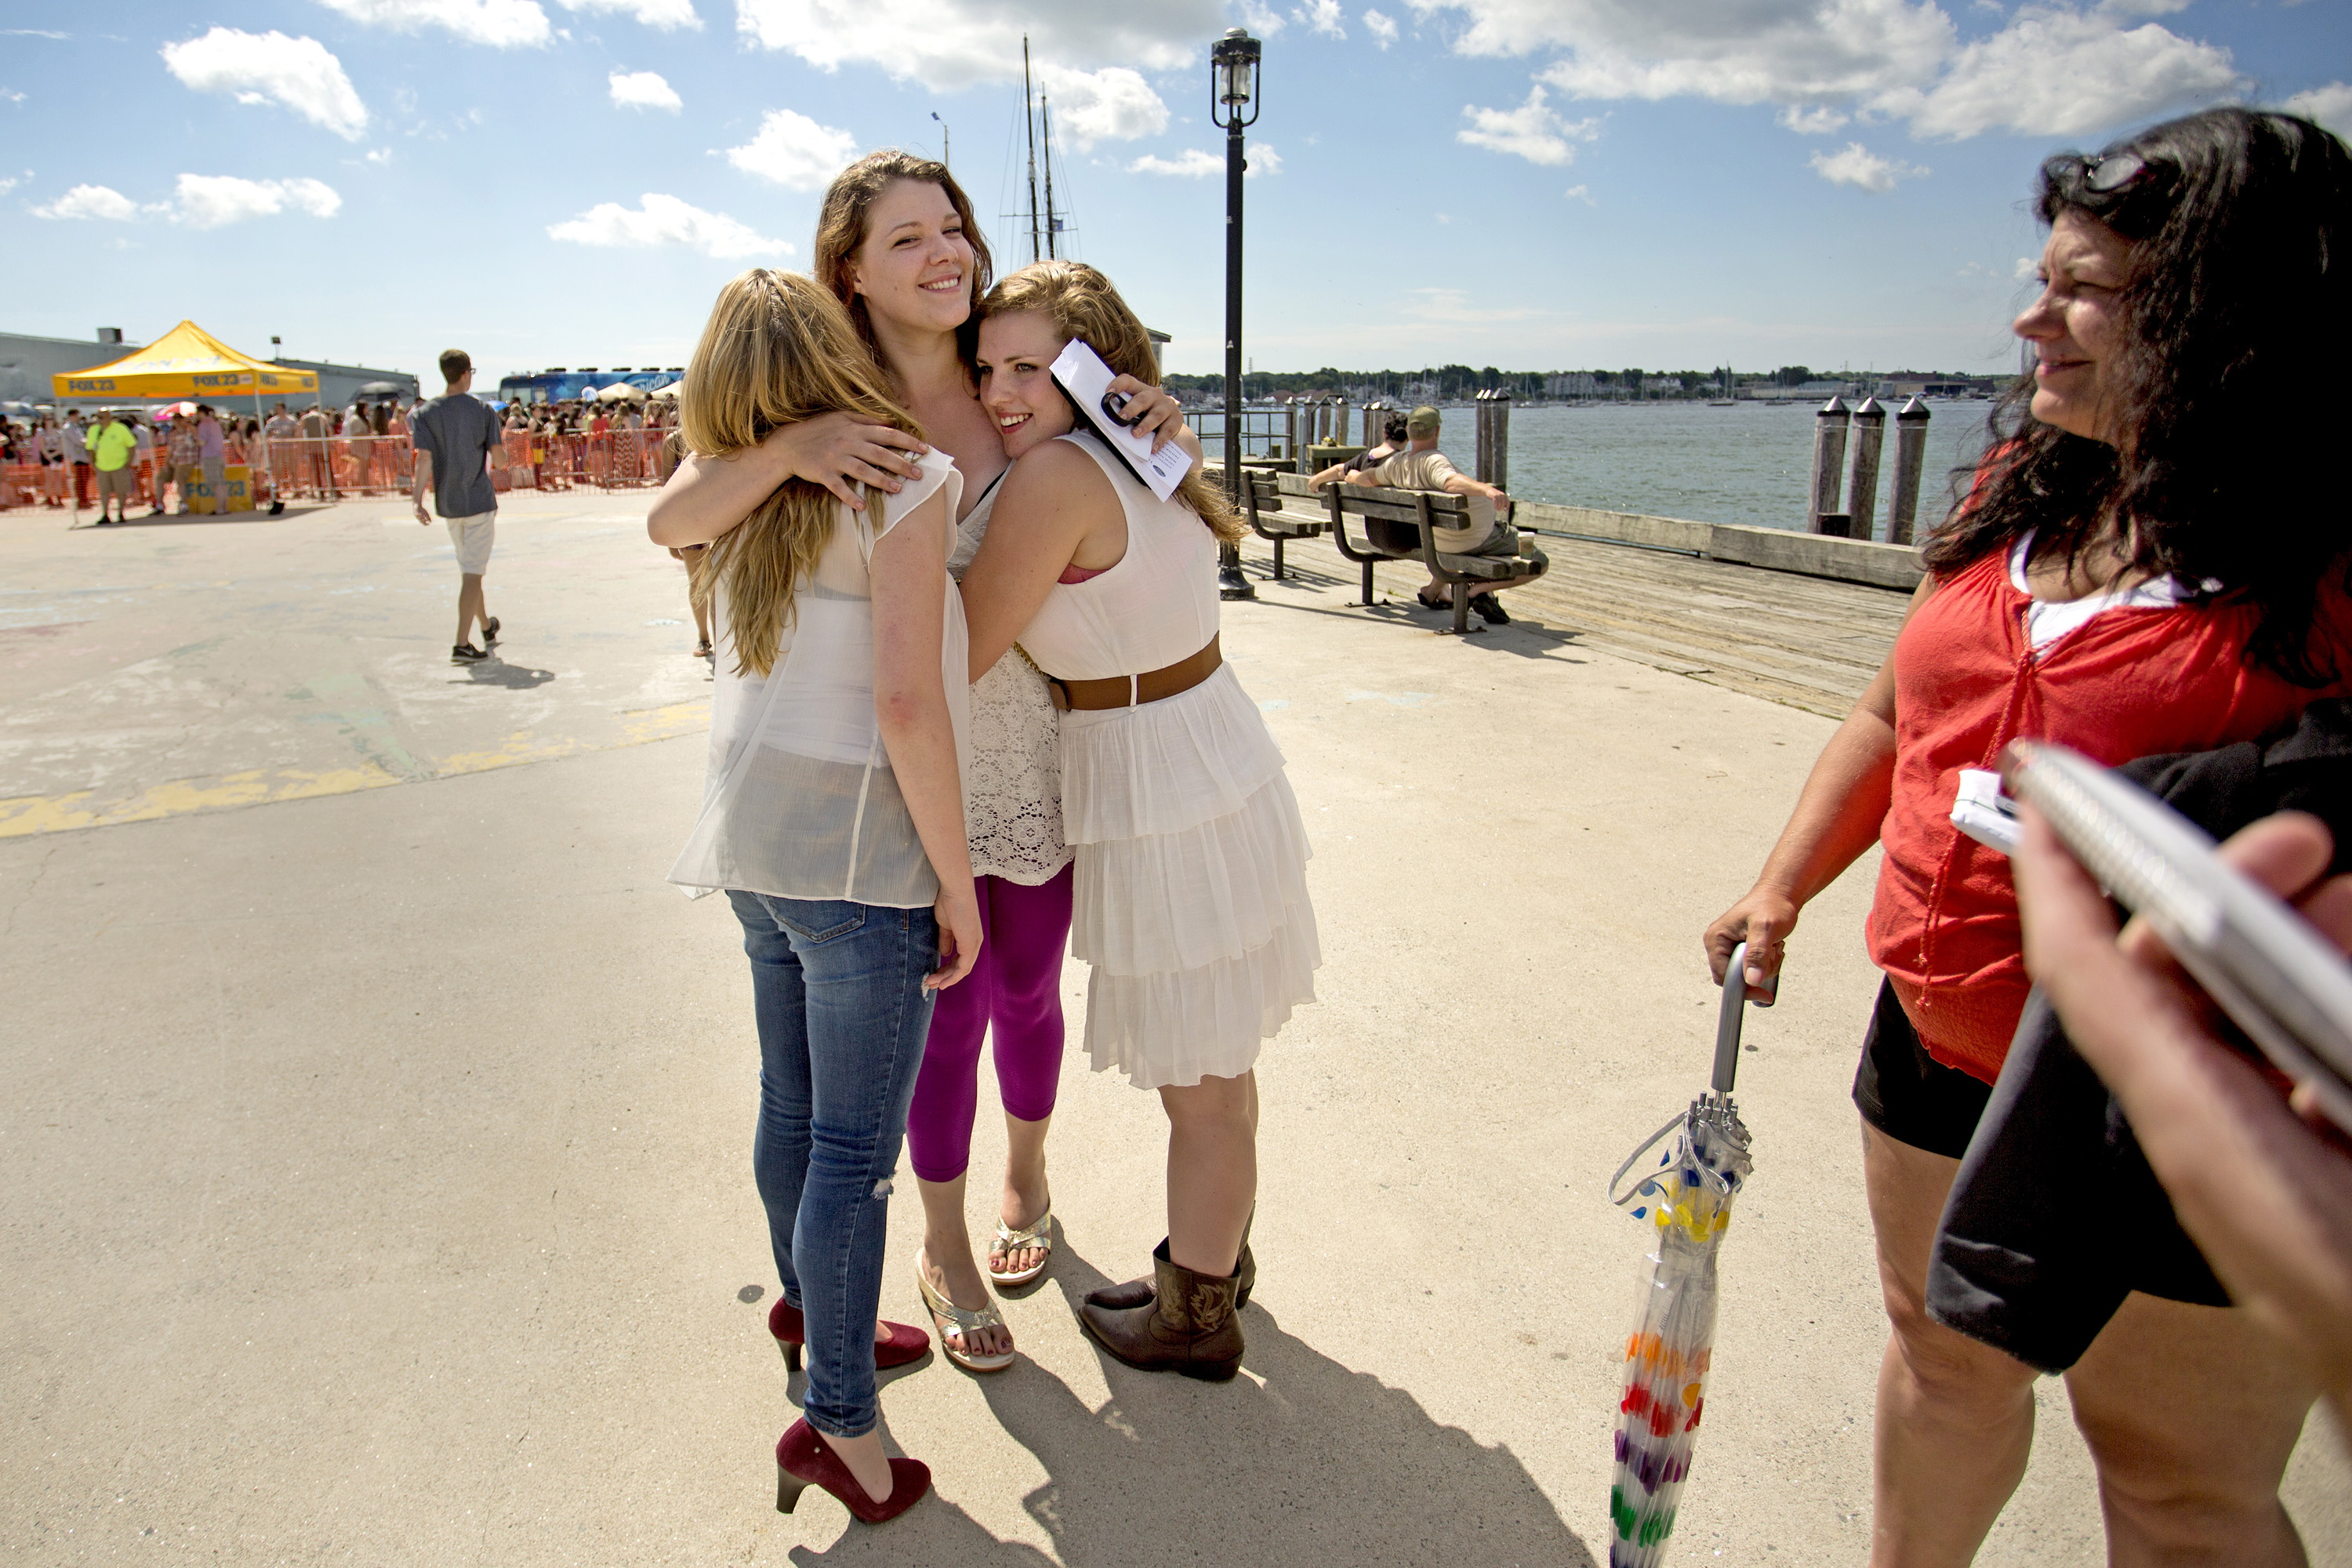 """Abigail Day, 17, of Cornish, left, Jaile Kane, 25, of Ellsworth, and Miranda Mastera, 16, of Hiram, embrace after the trio auditioned but didn't make the cut for """"American Idol"""" on the Maine State Pier in Portland on Wednesday."""